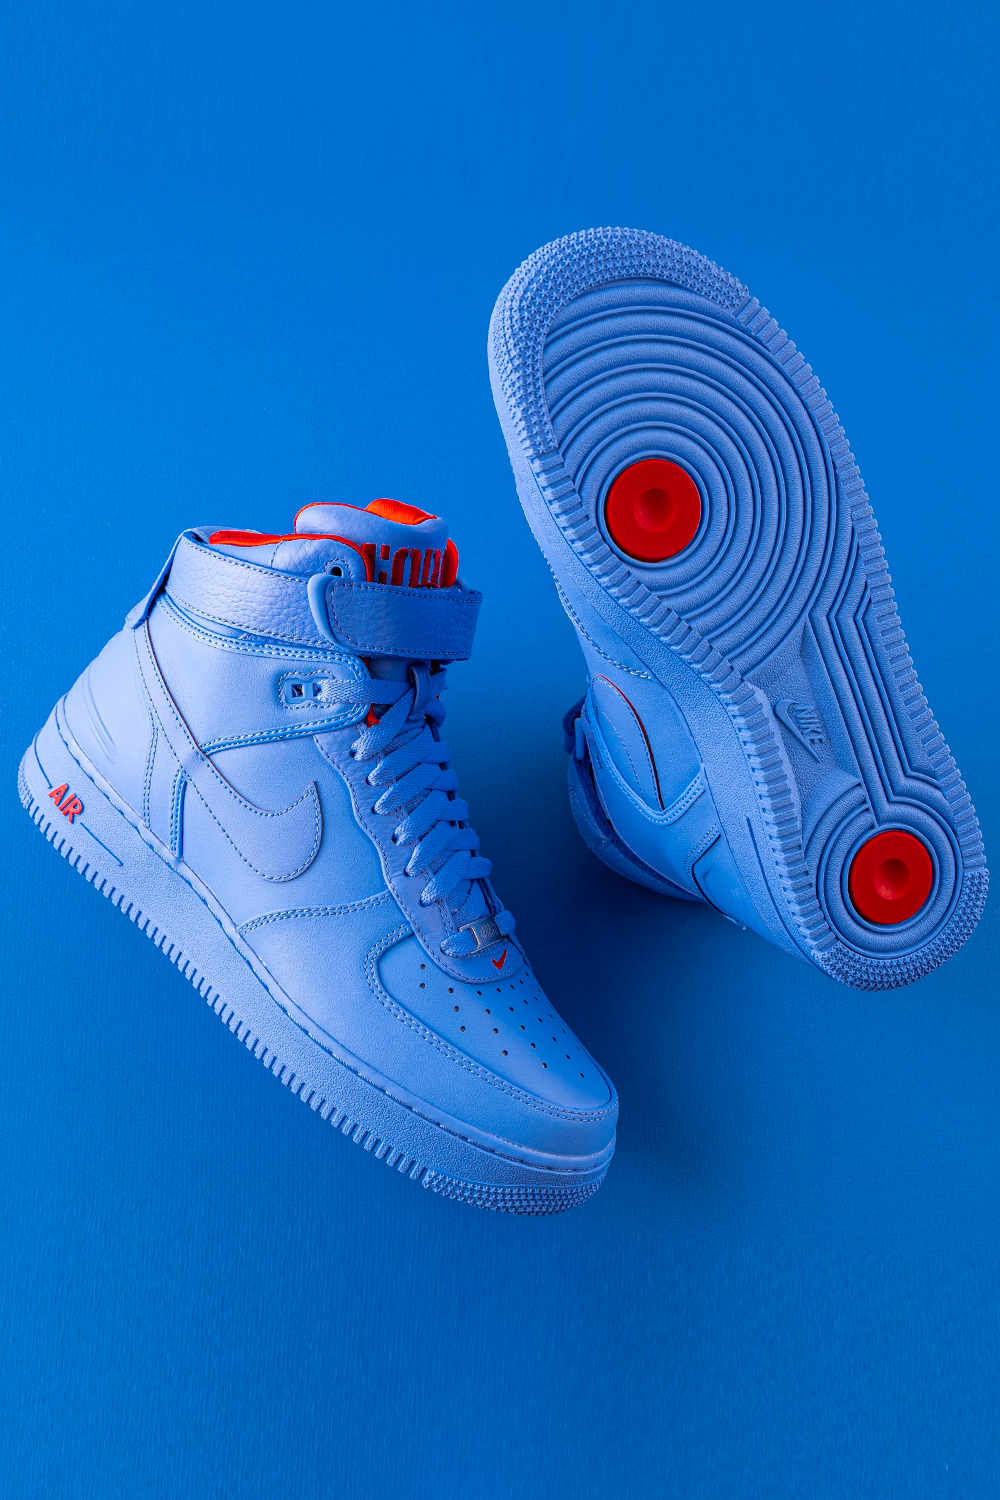 Nike Air Force 1 High Just Don All Star Cw3812 400 2021 Sneakers Men Fashion Mens Nike Shoes Latest Nike Shoes